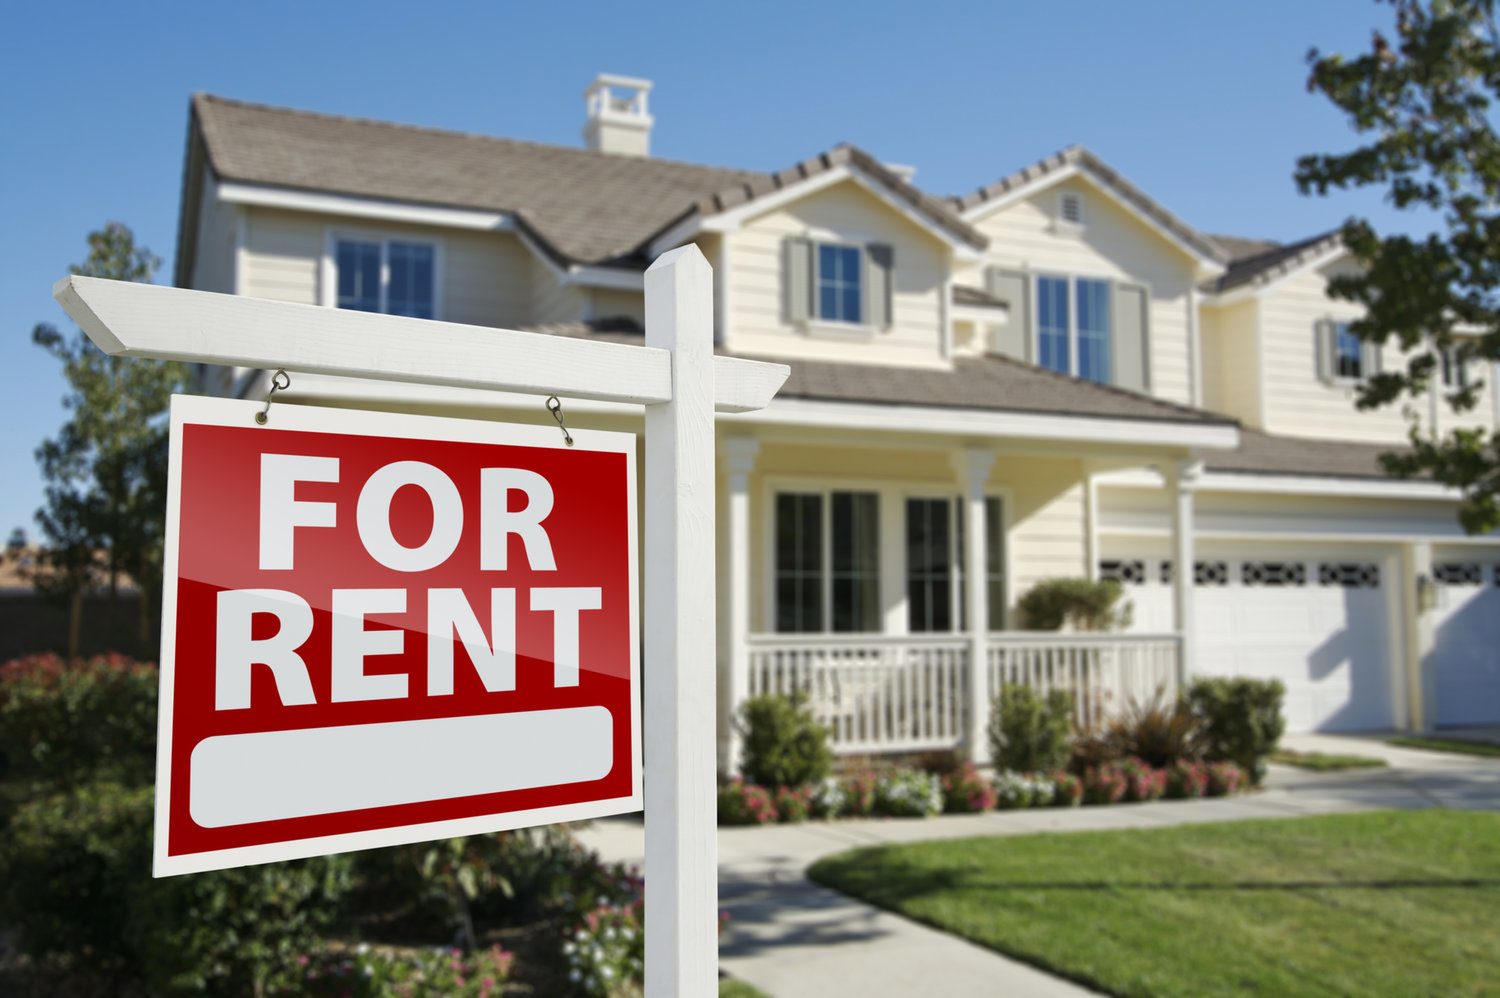 Bad Credit Can Hurt Your Ability To Rent: These 5 Tips Can Help